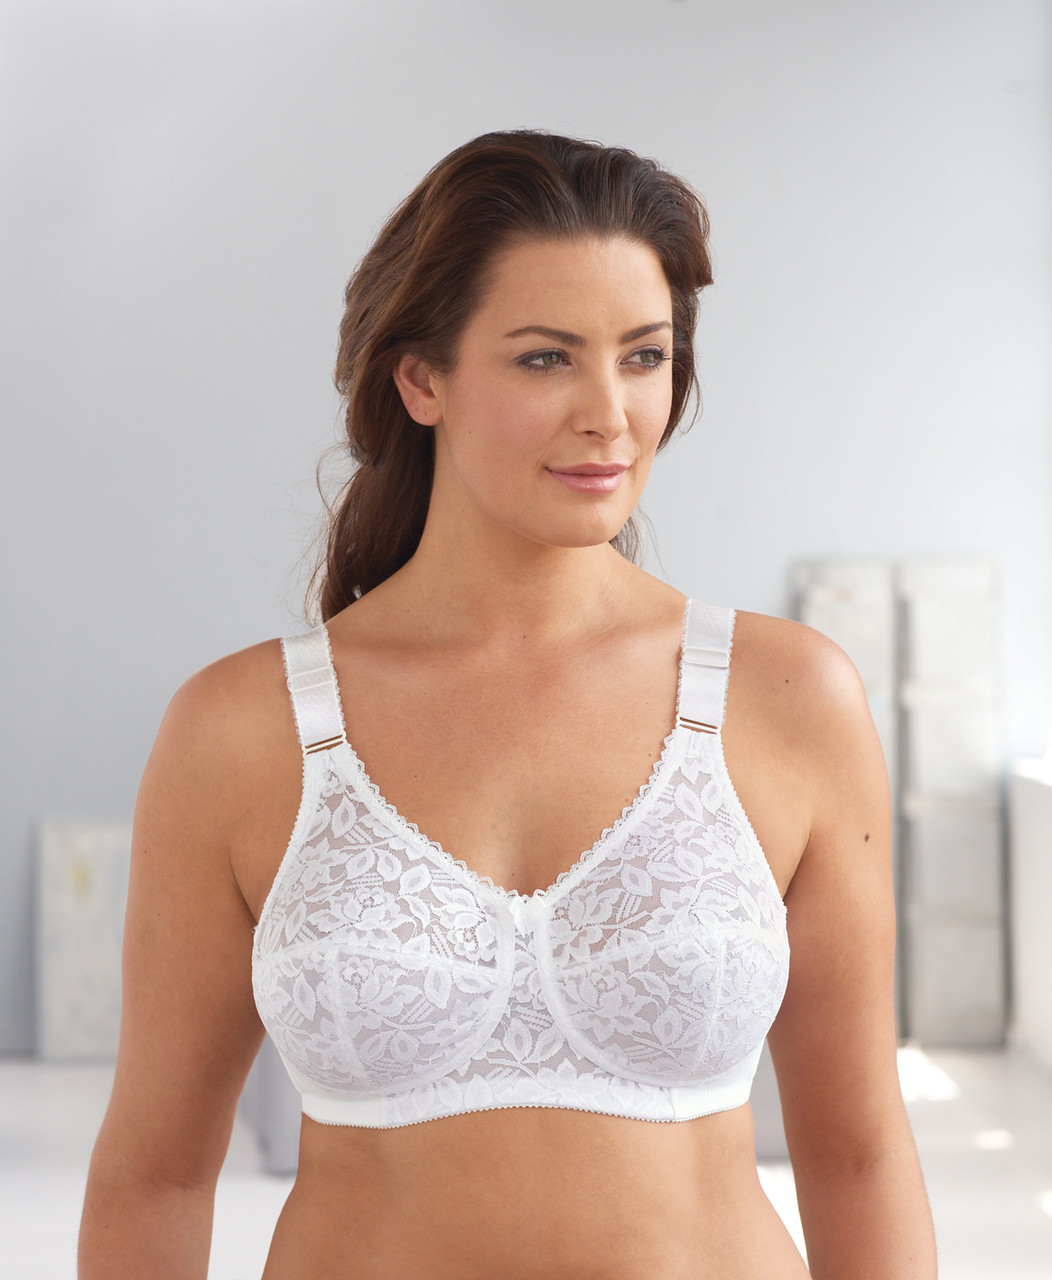 c71b24161cd ... Glamorise Classic Lace Full-Figure Soft Cup Support Bra White. Loading  zoom